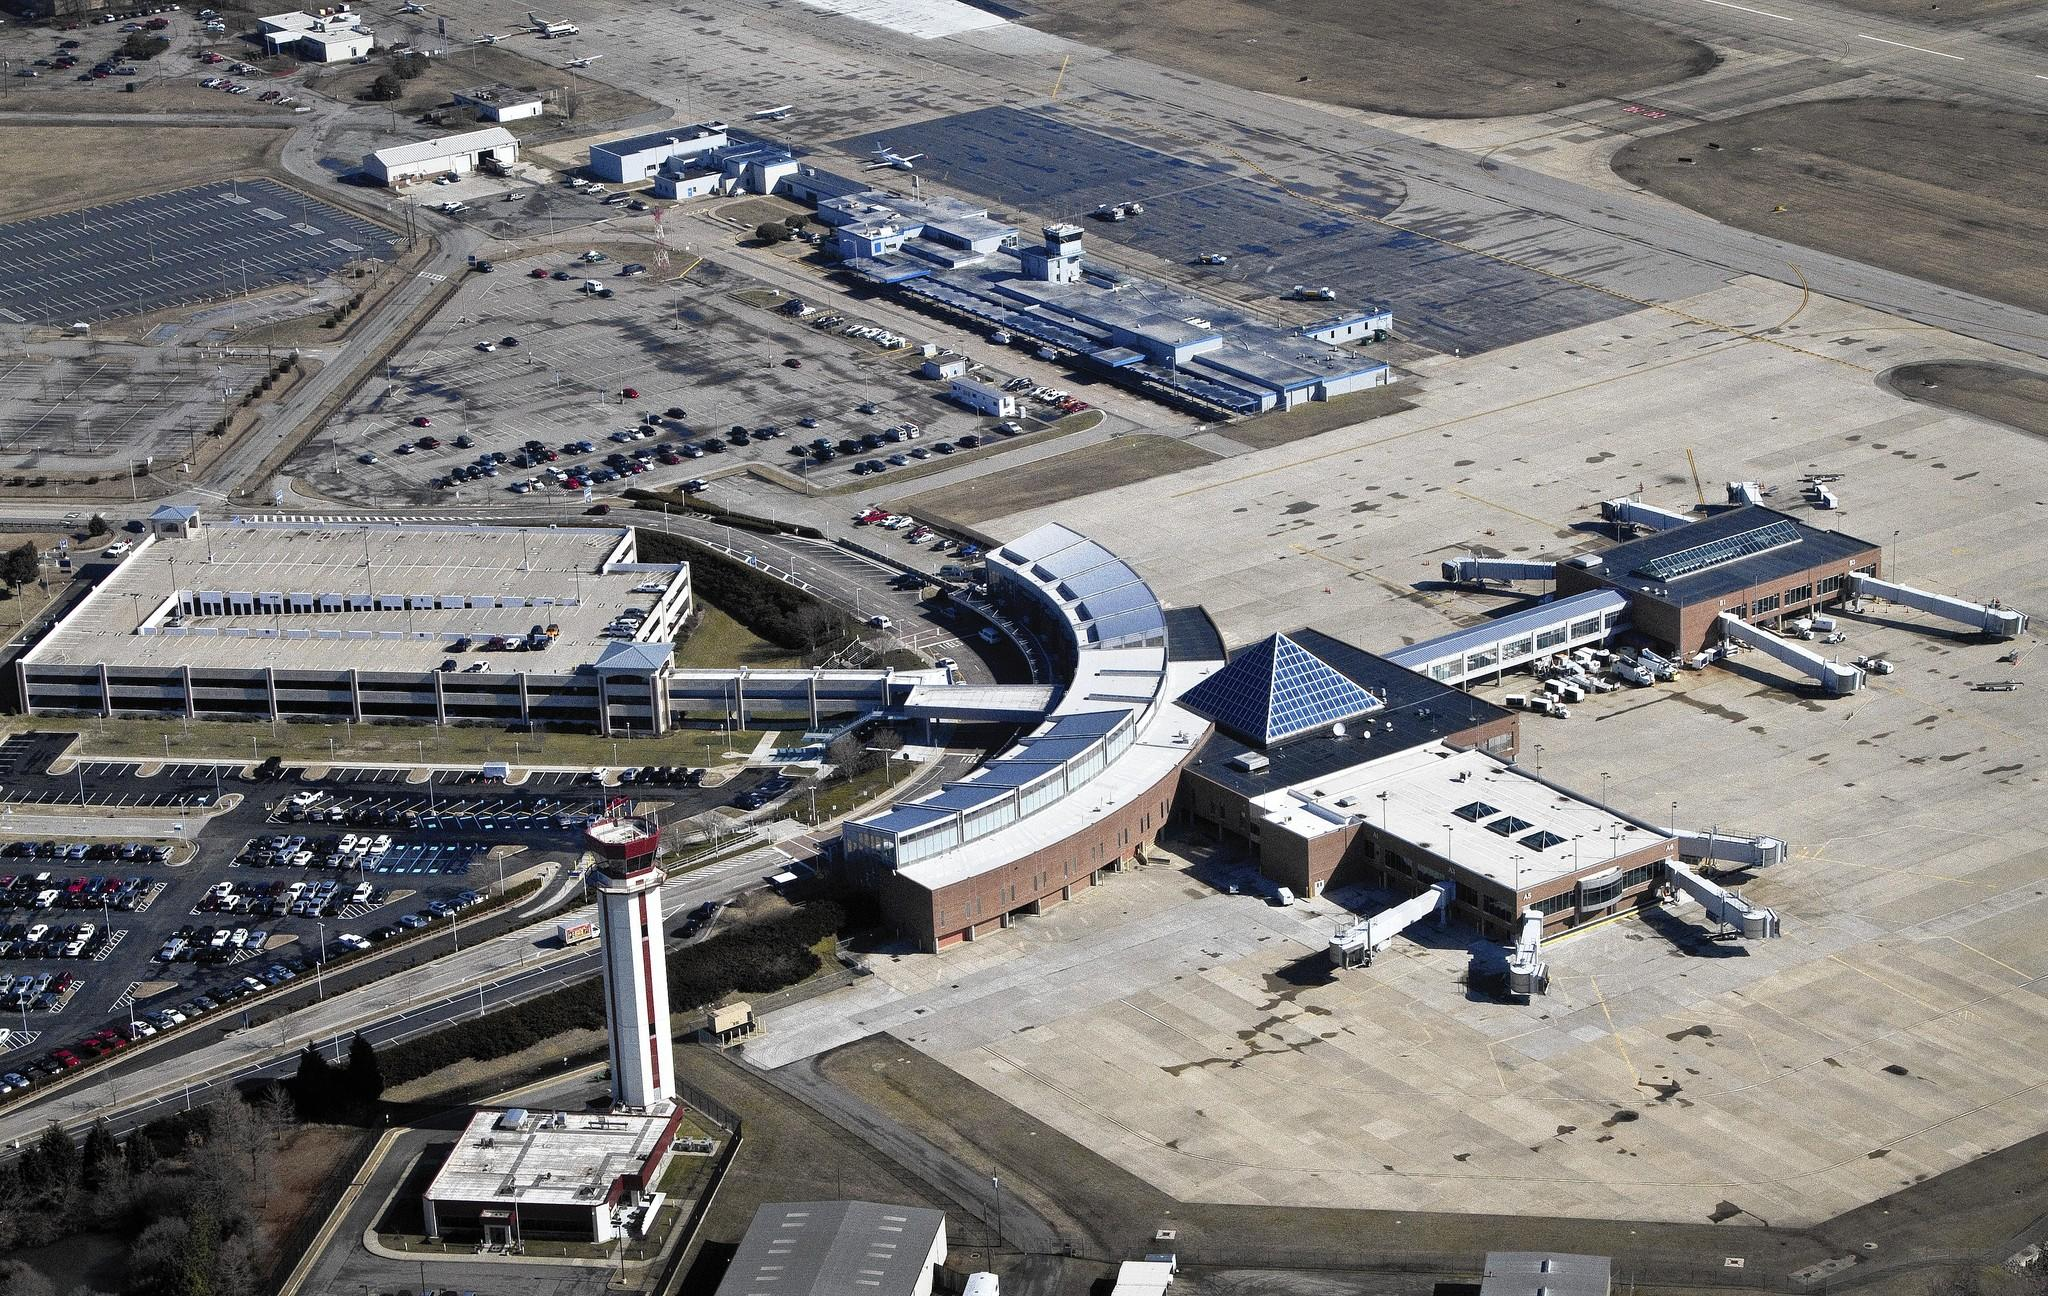 The Newport News-Williamsburg International Airport has seen a steep drop-off in passengers since Airtran Airways left in 2012.